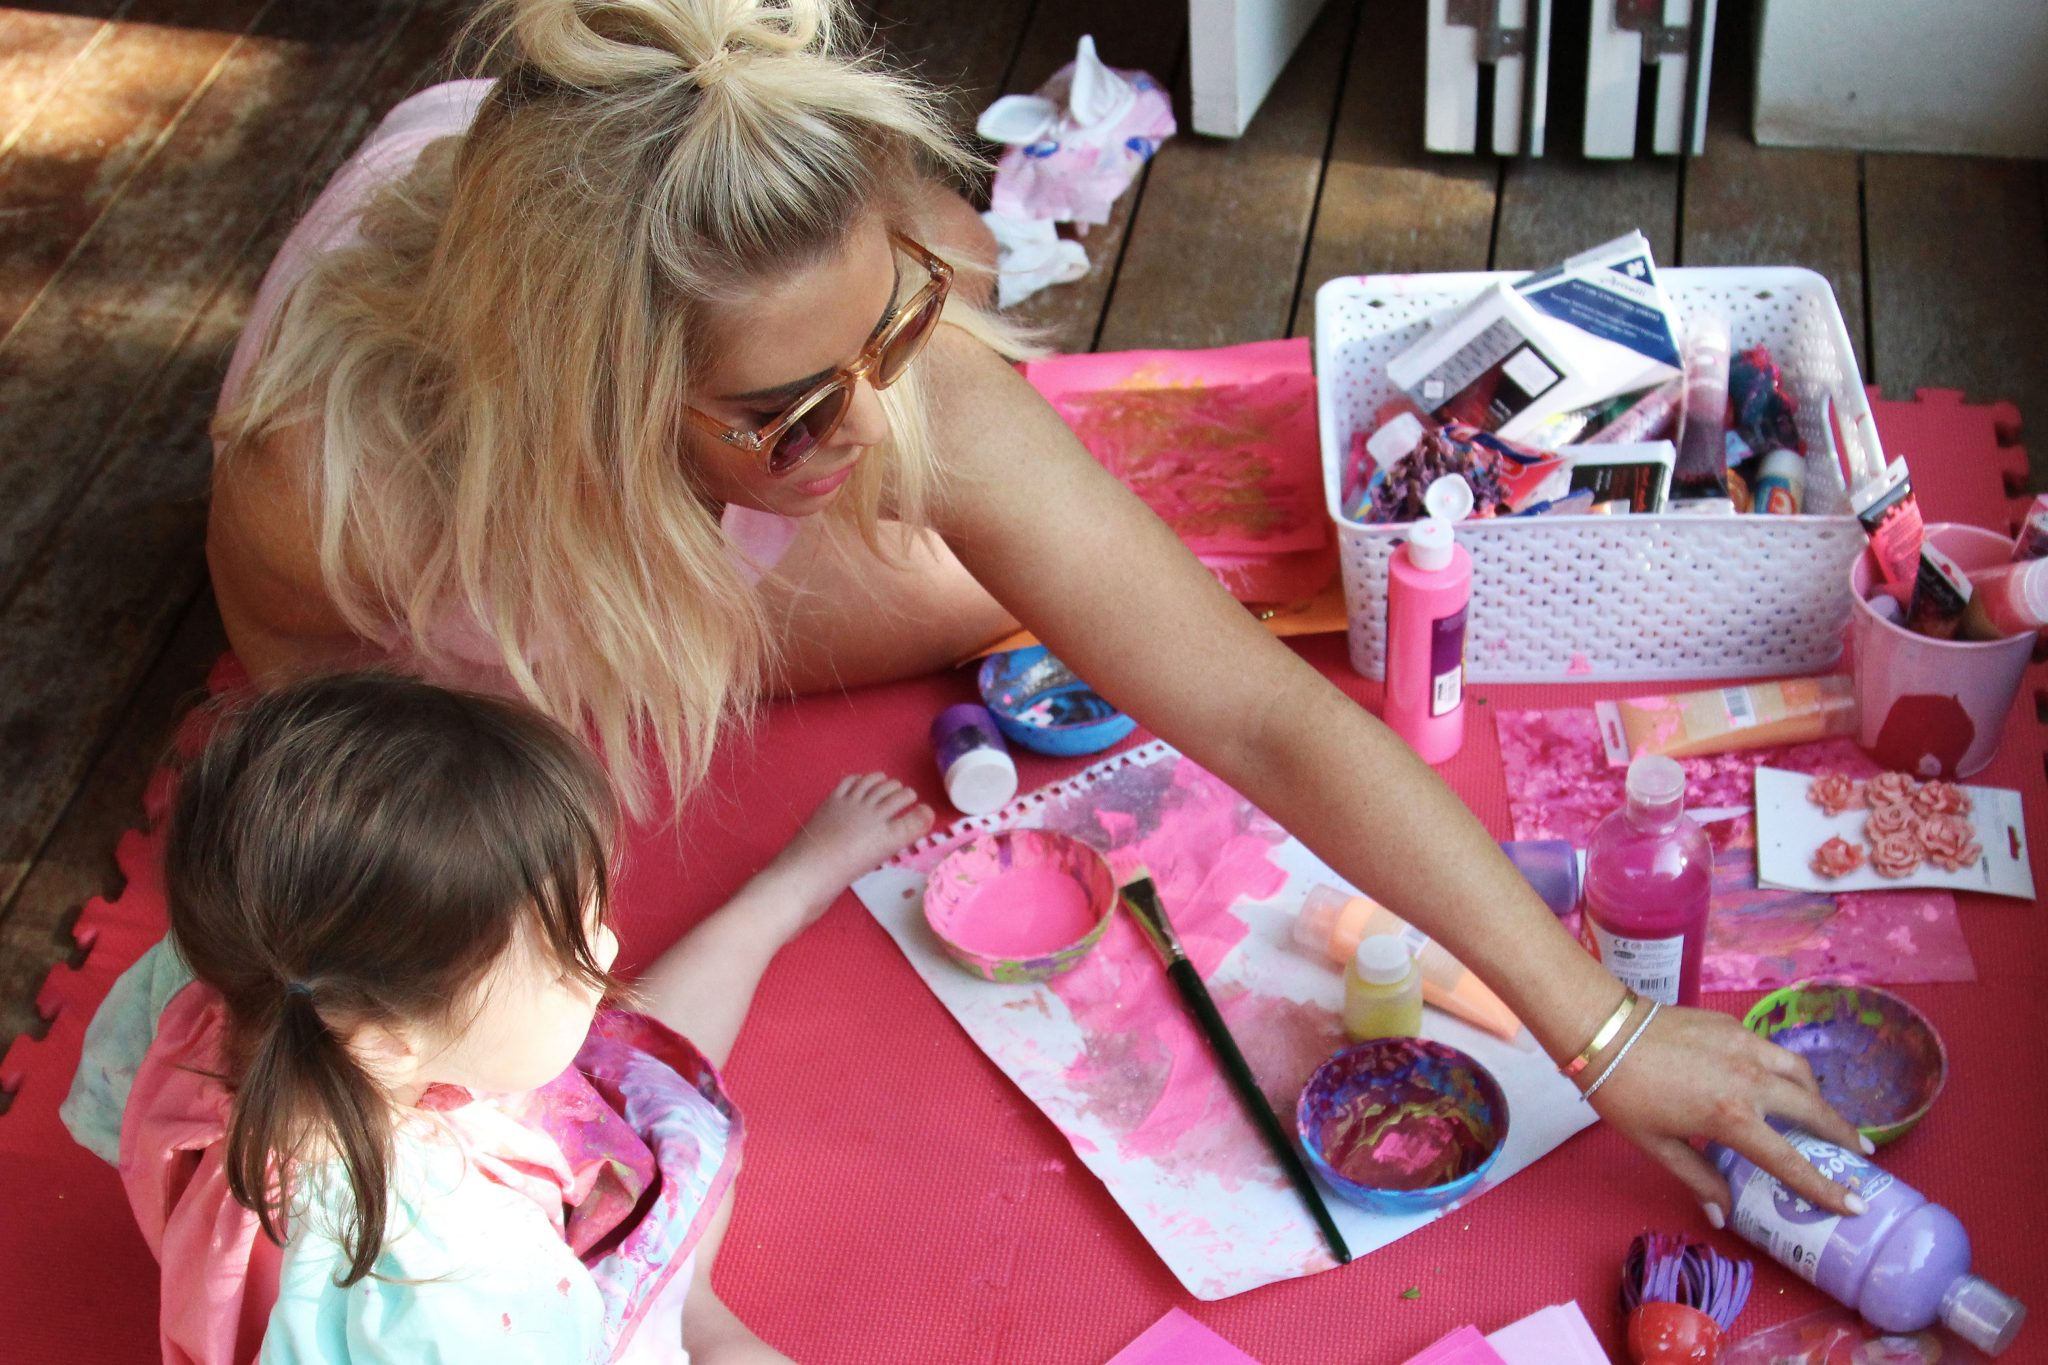 sarah jane young, sheissarahjane, mummy blogger, DIY crafts, art and craft, messy play, kids paints, melbourne mummy blogger, glitter, safe kids paint, Crayola, Officeworks